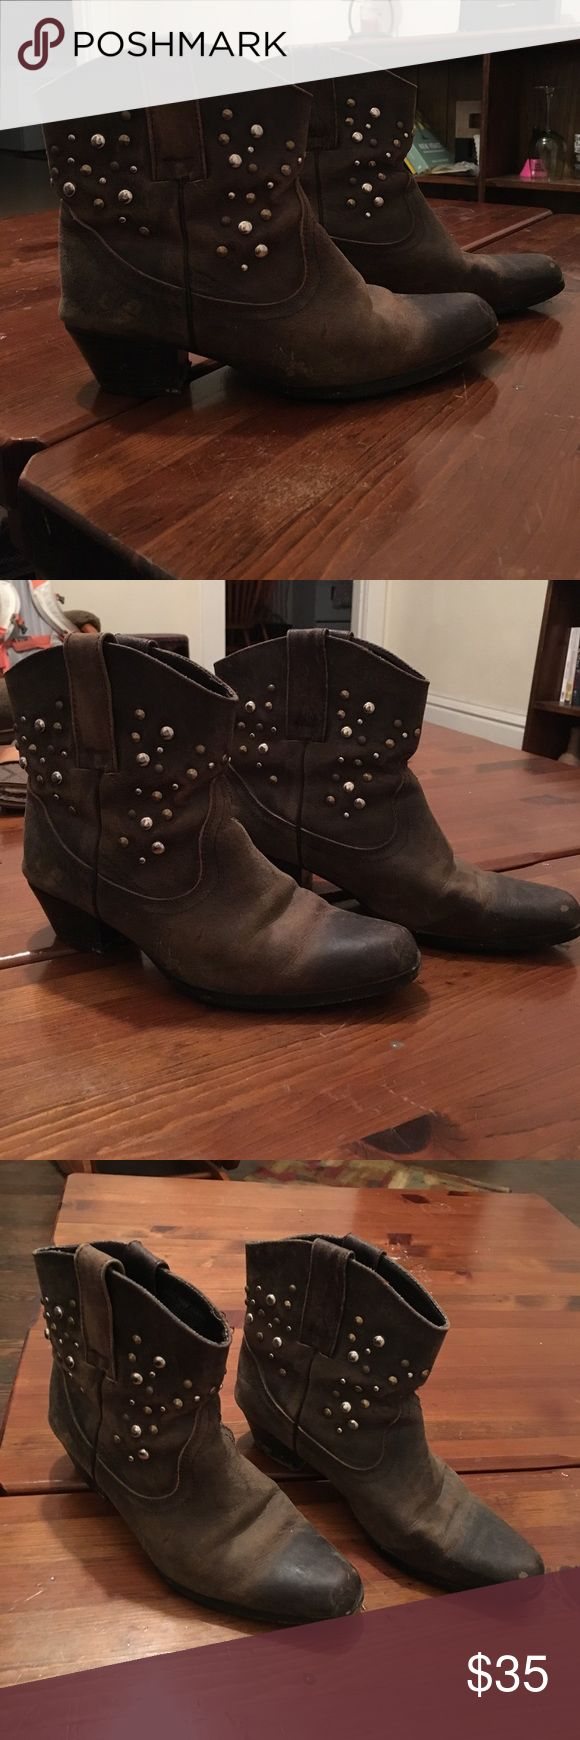 Short Studded Cowboy Boots These Oak Tree Farms studded cowboy boots are perfect for any occasion, especially country concerts! Worn only a handful of times, these boots are definitely the perfect addition to any wardrobe. Feel free to make an offer!! Shoes Ankle Boots & Booties